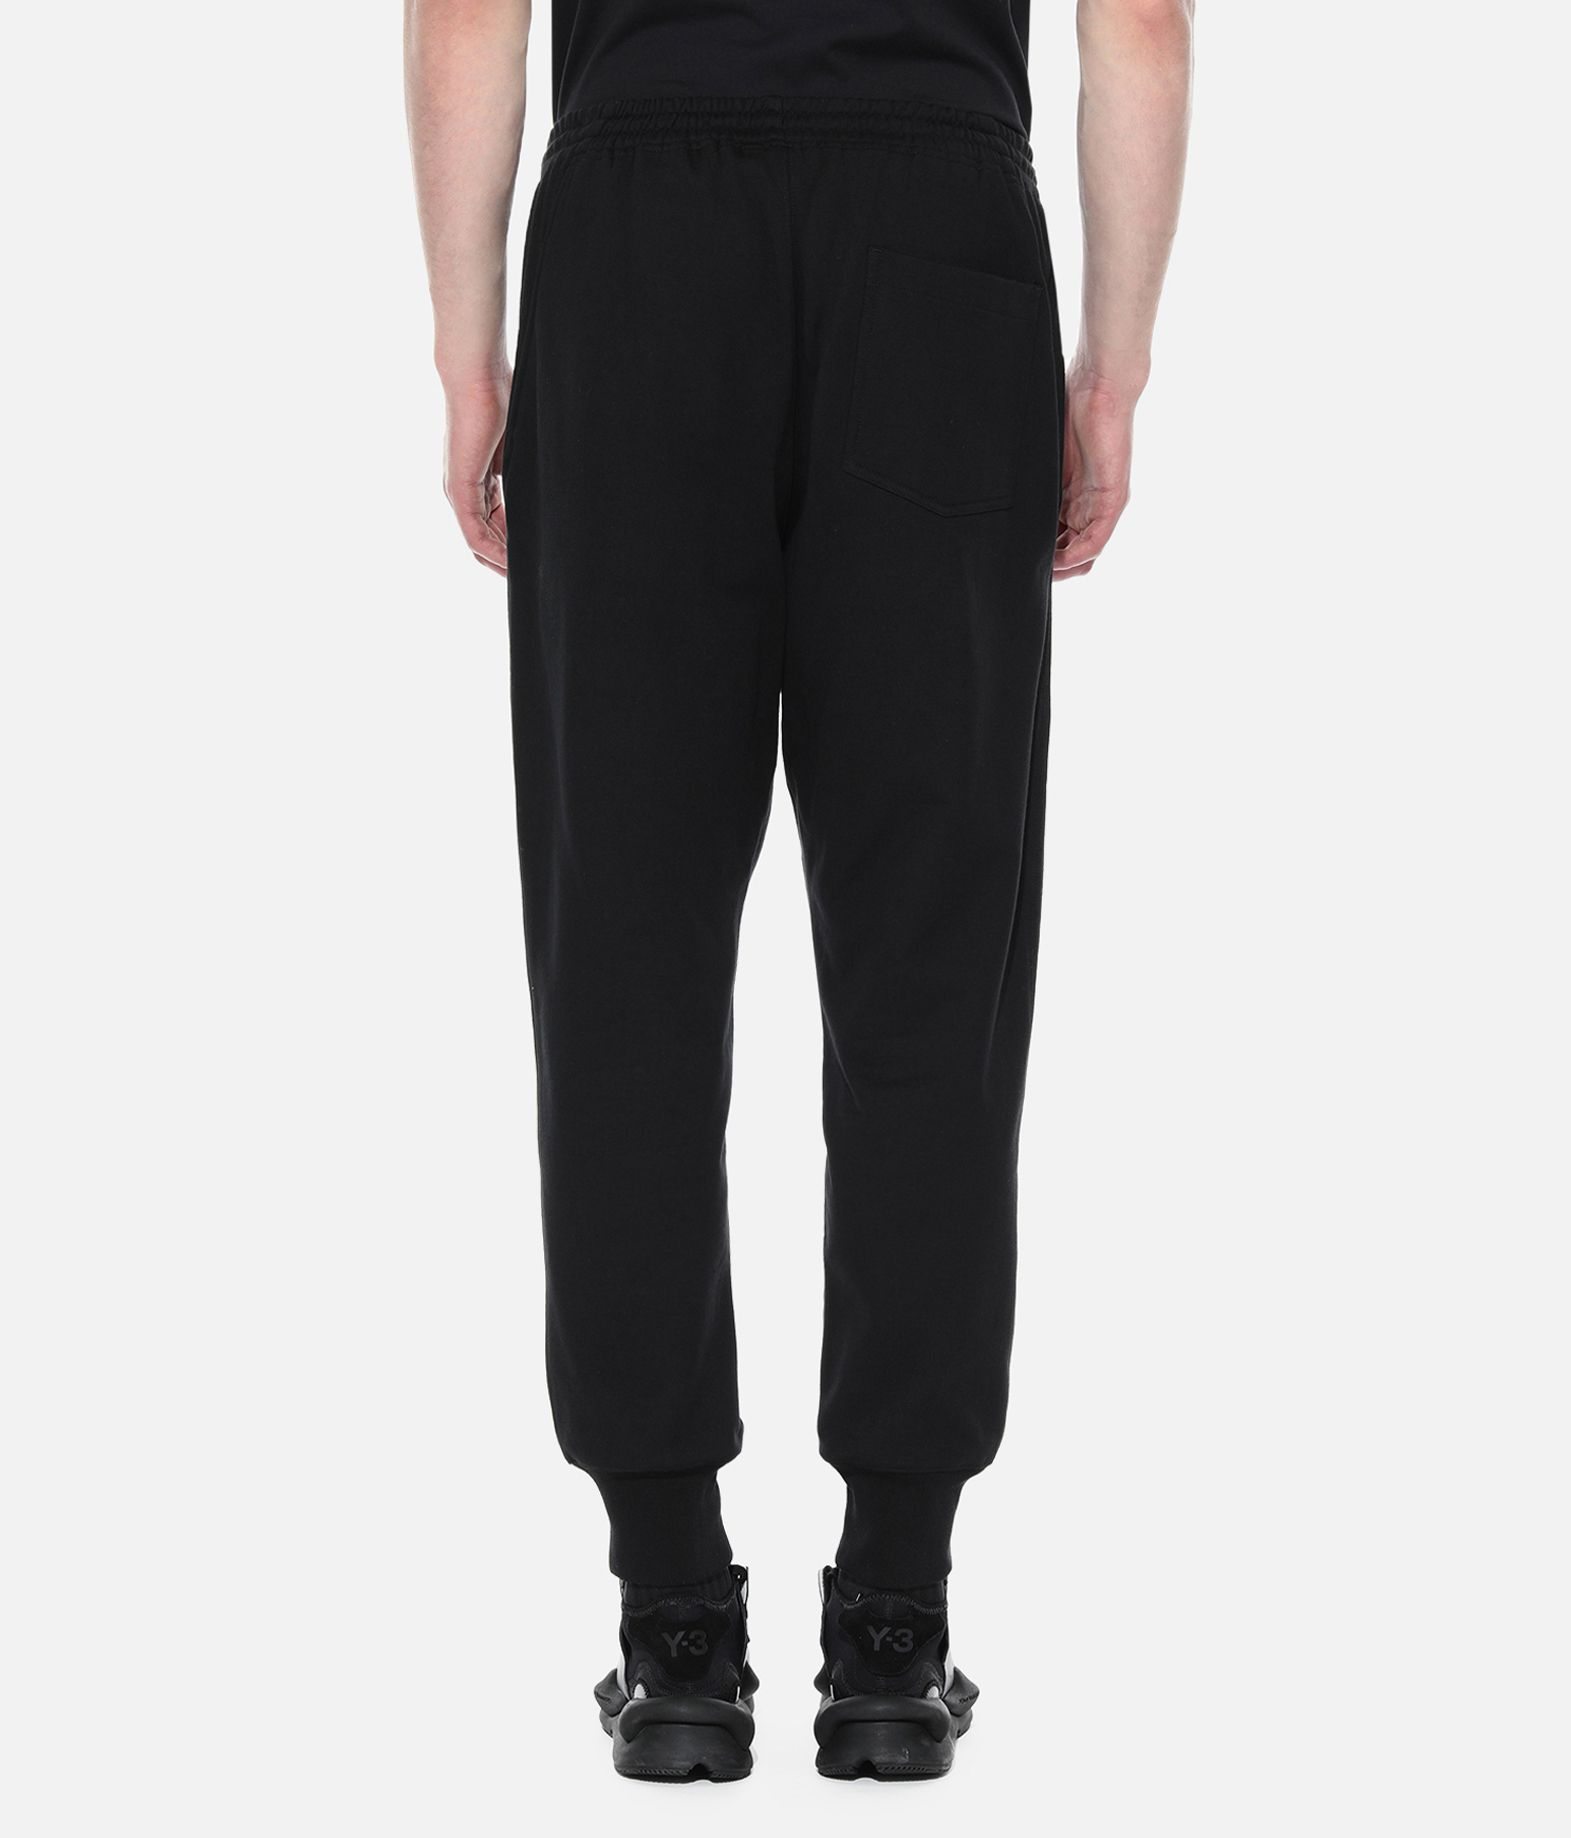 Y-3 Y-3 Classic Cuffed Pants Casual pants Man d